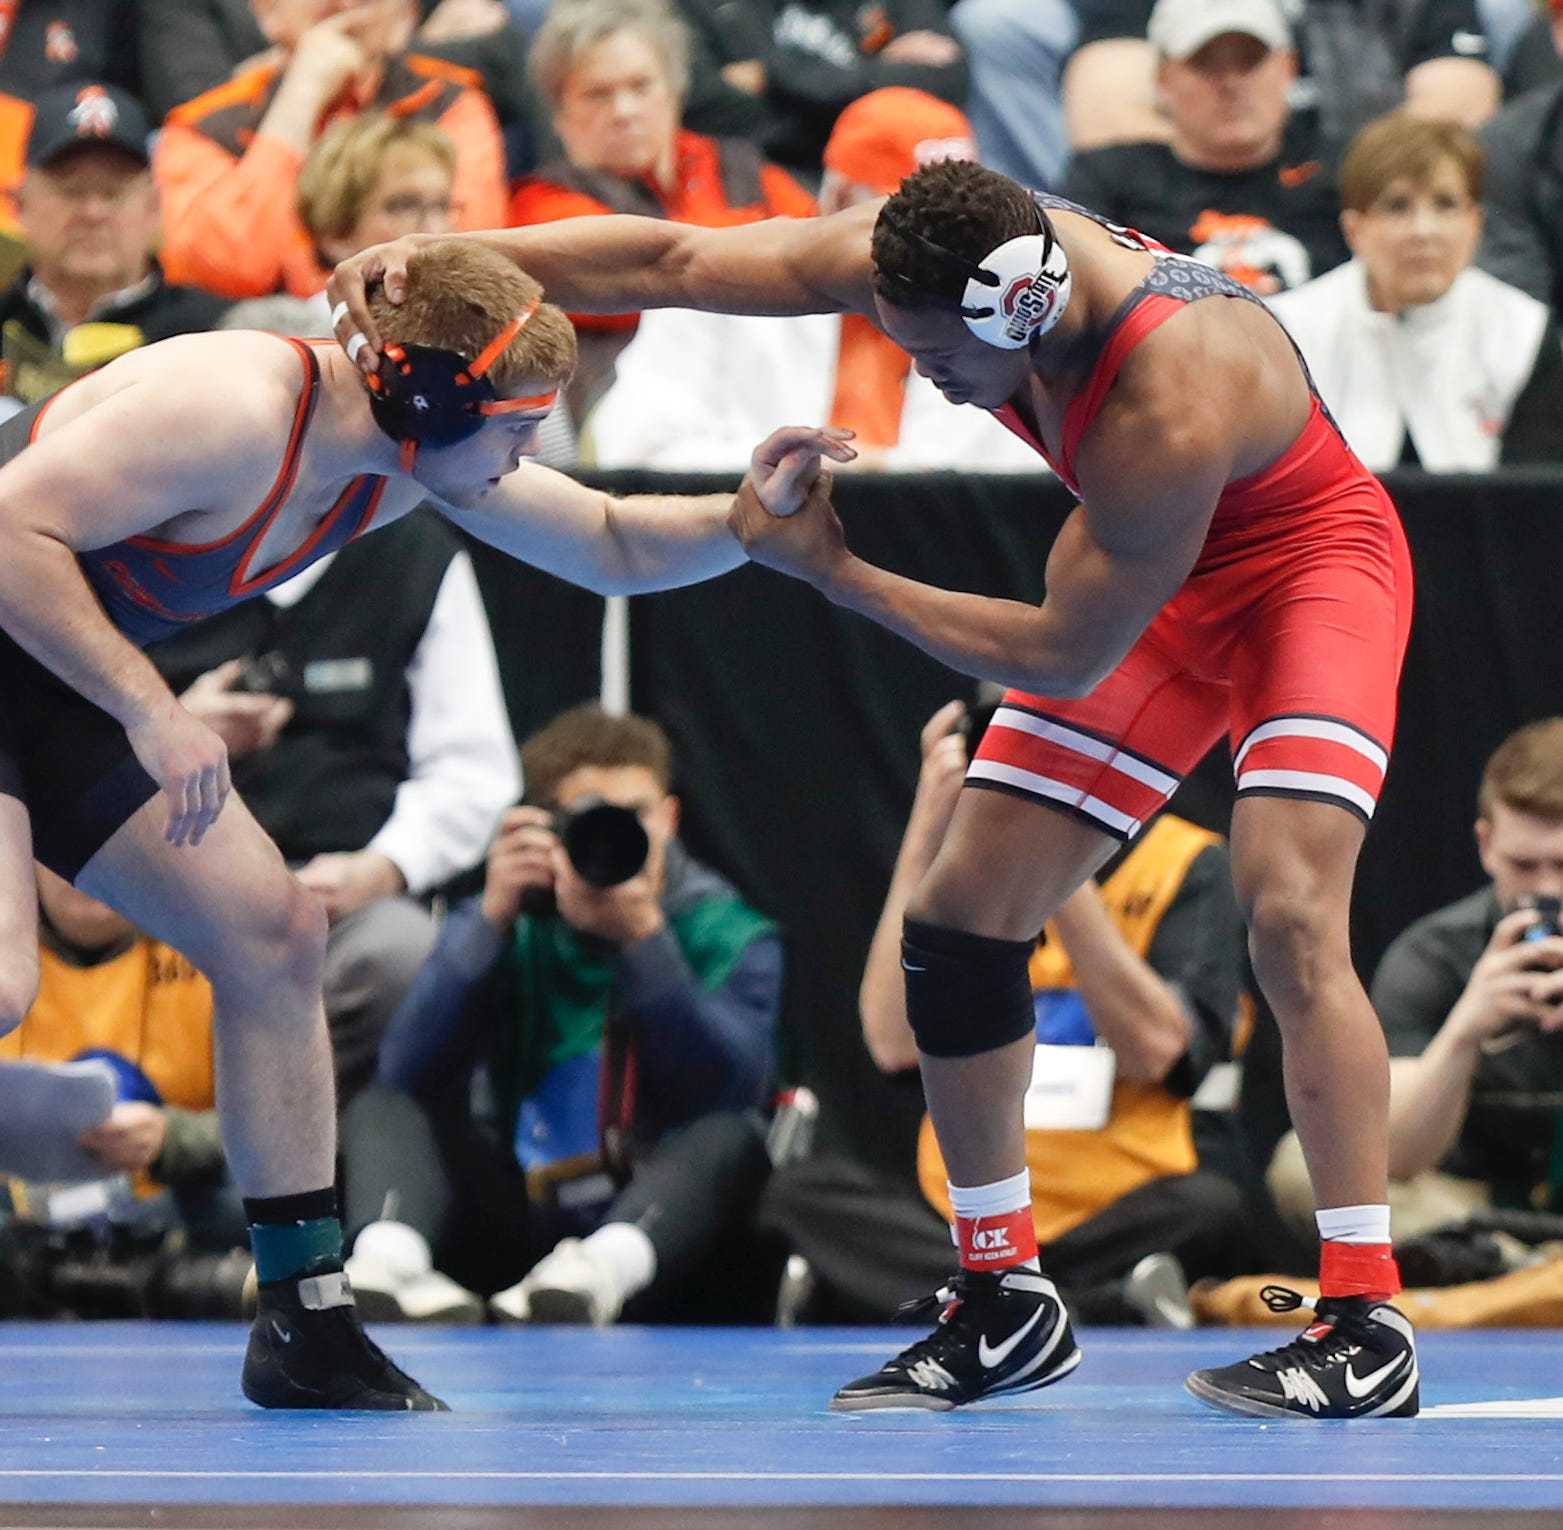 NCAA wrestling championships 2019: Final match-ups, TV schedule